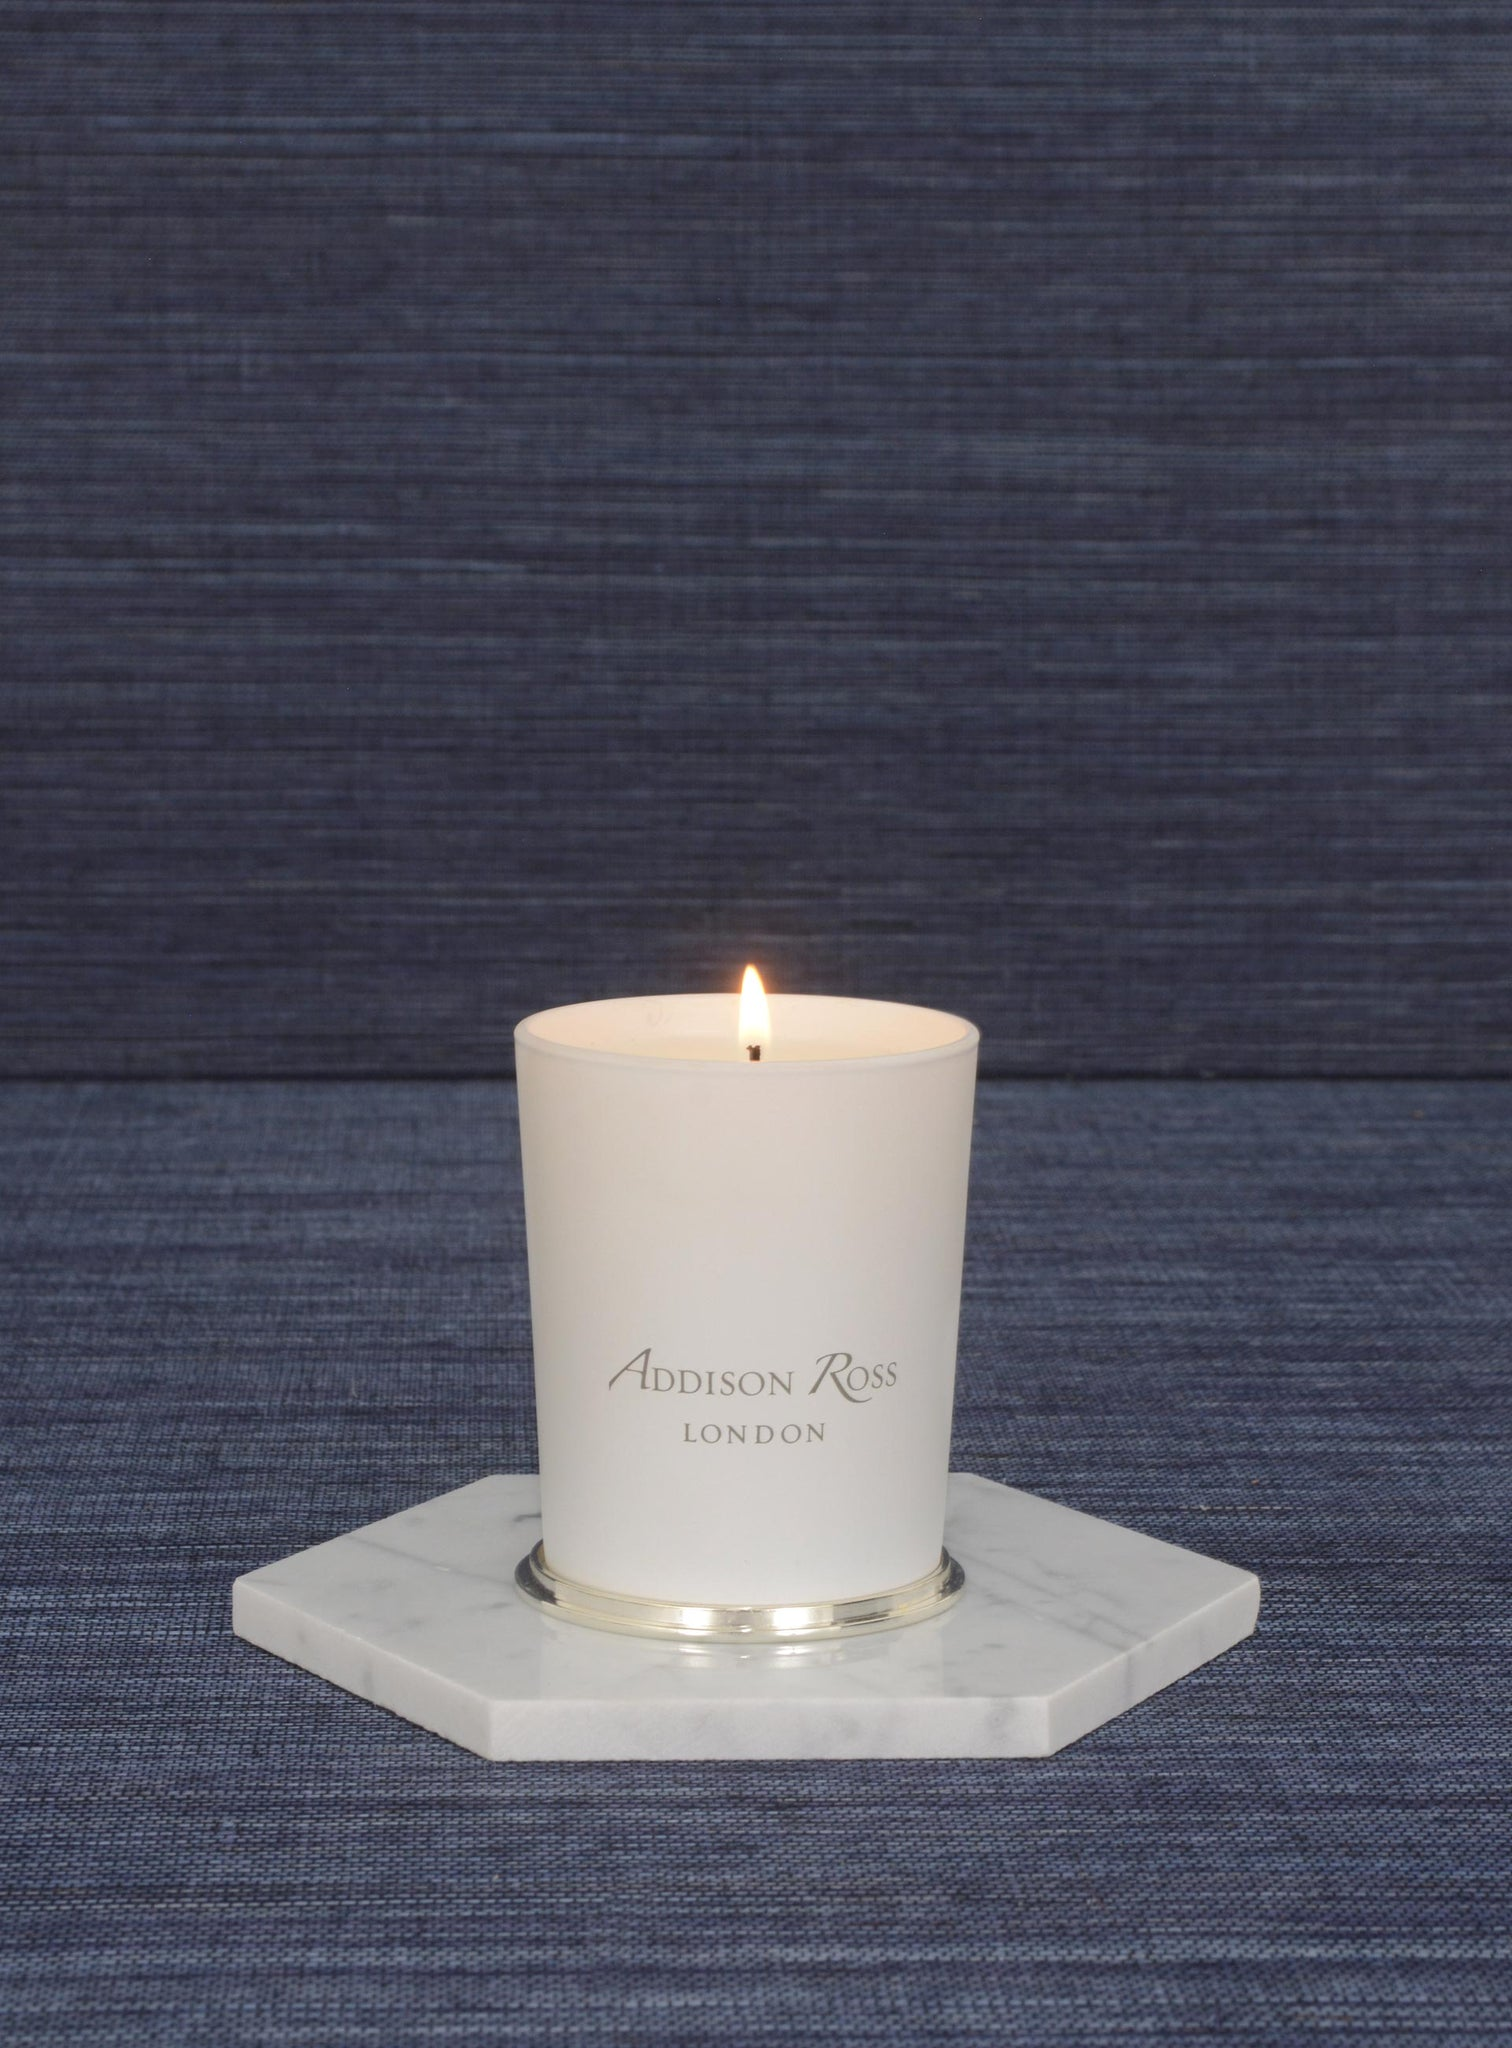 Addison Ross Candle